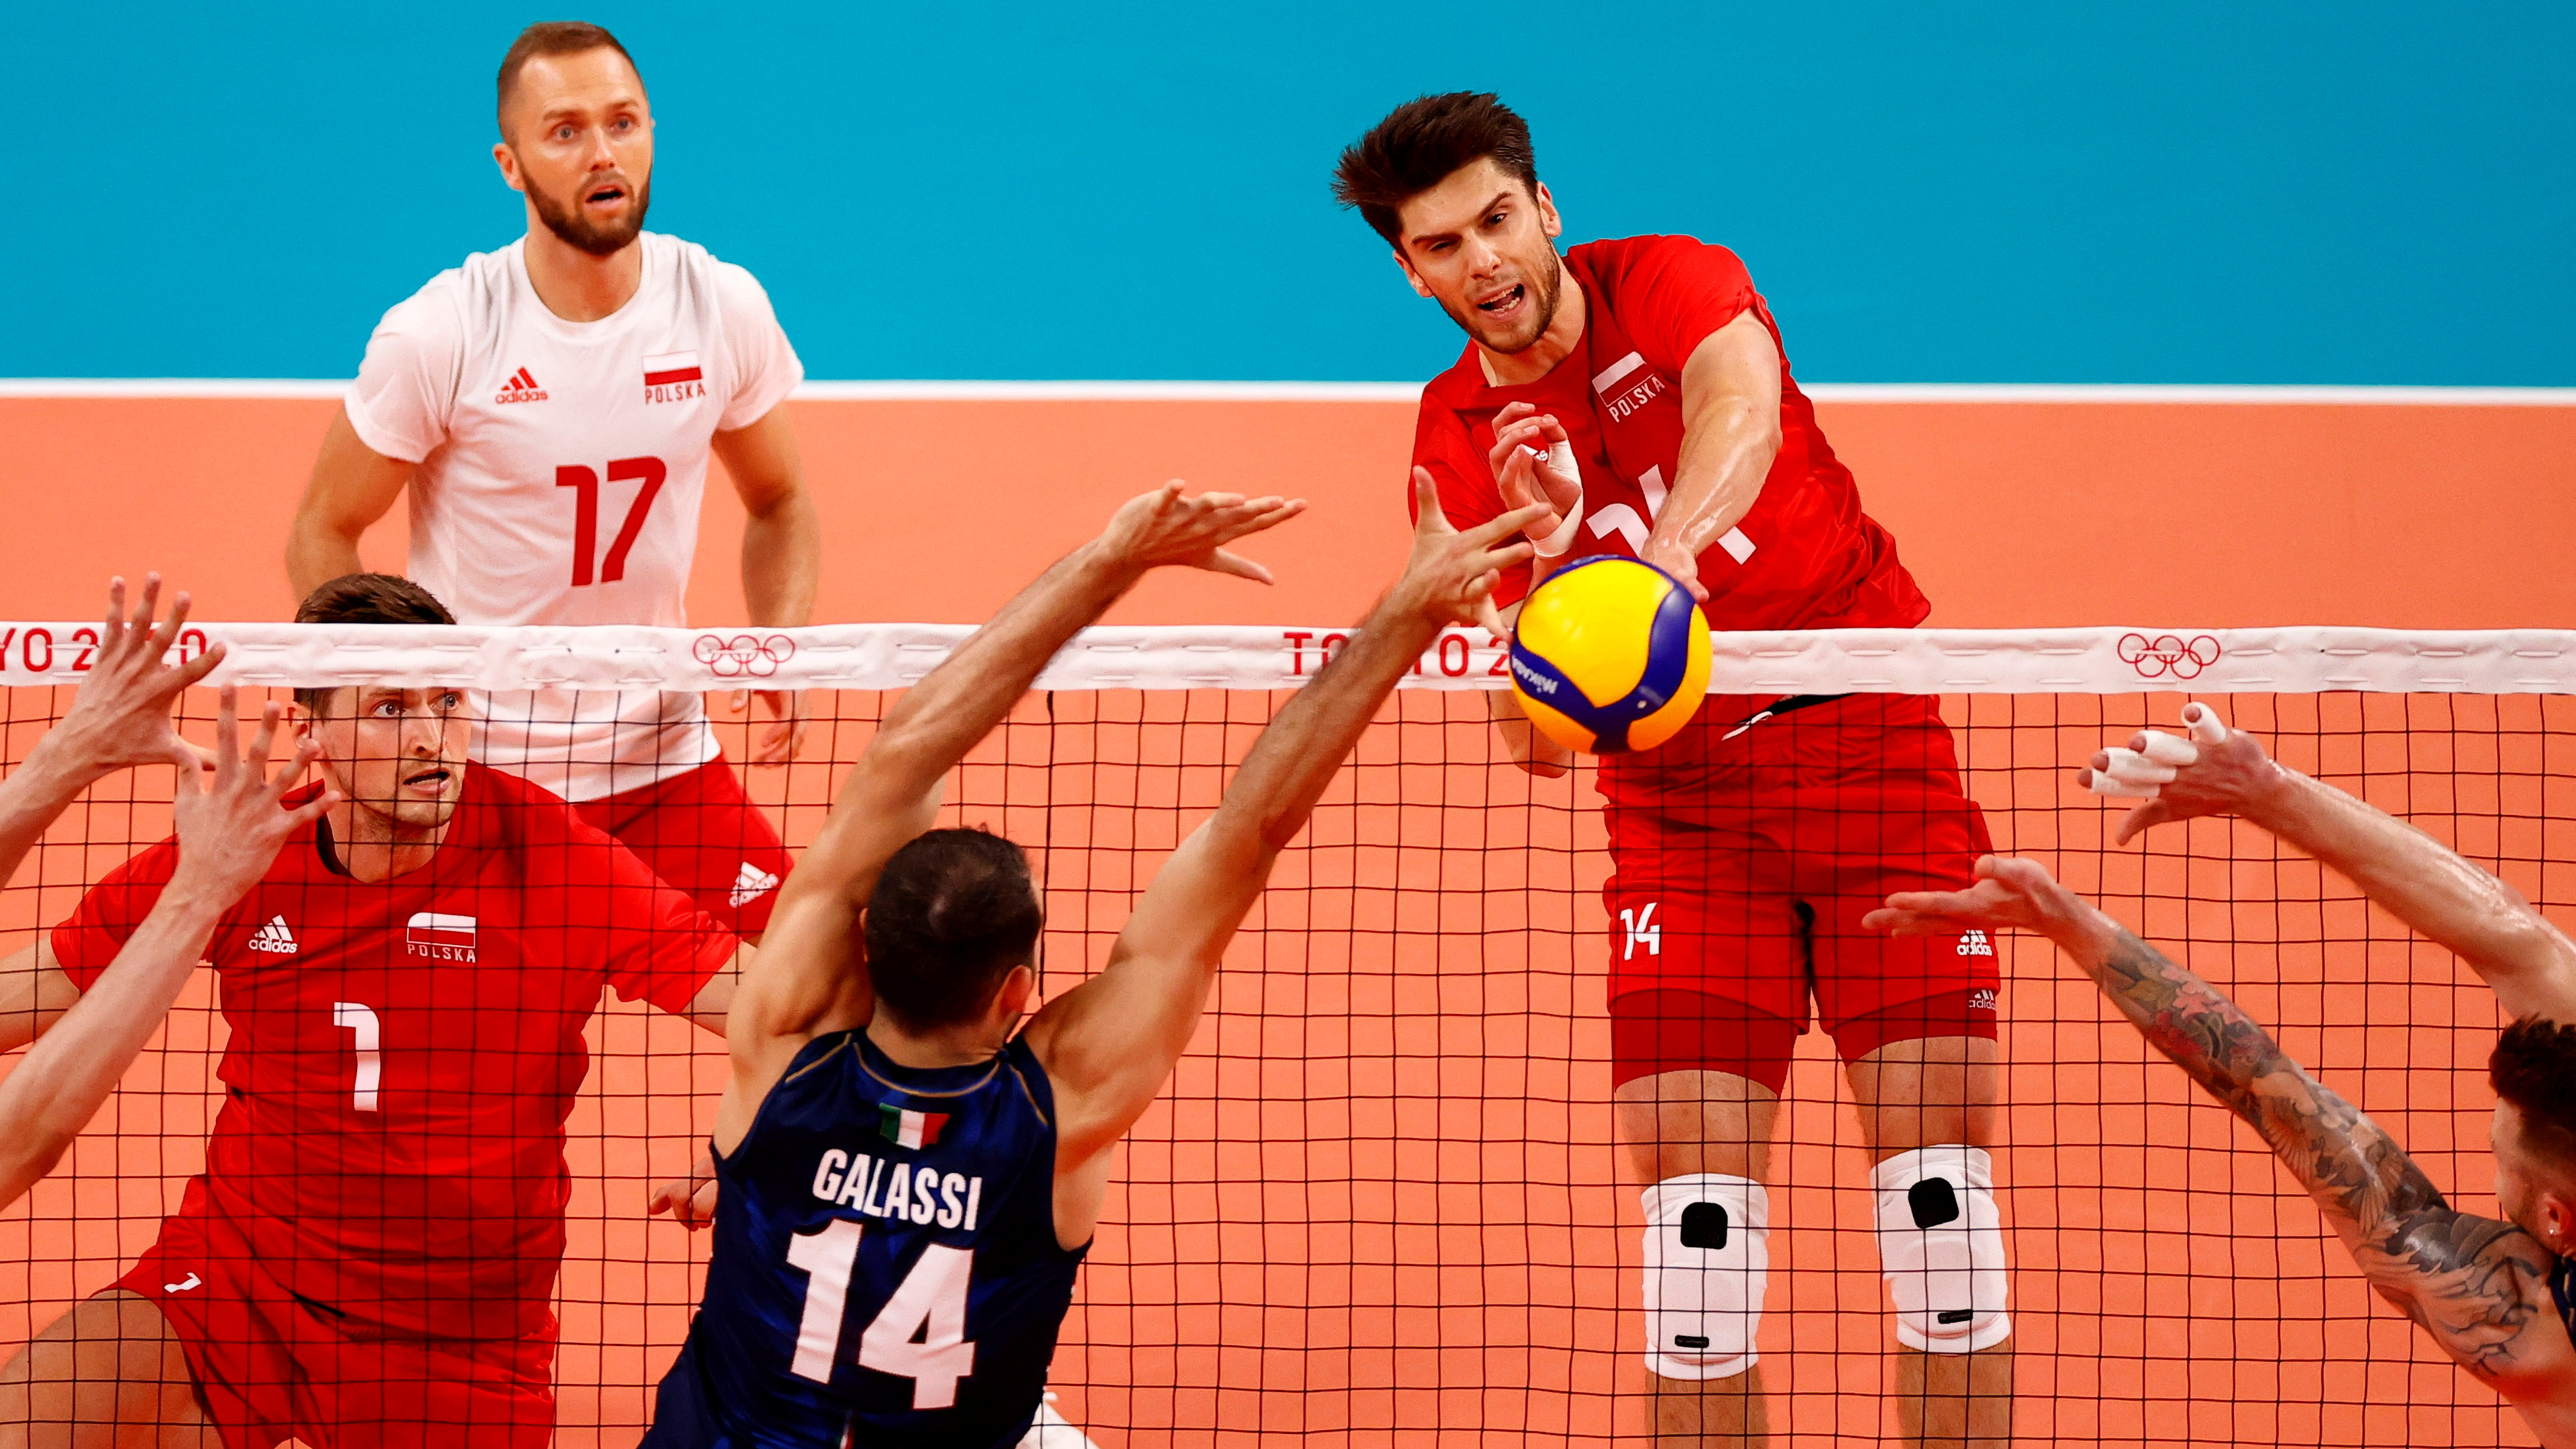 Tokyo 2020 Olympics - Volleyball - Men's Pool A - Poland v Italy - Ariake Arena, Tokyo, Japan – July 26, 2021. Aleksander Sliwka of Poland in action with Gianluca Galassi of Italy. REUTERS/Carlos Garcia Rawlins